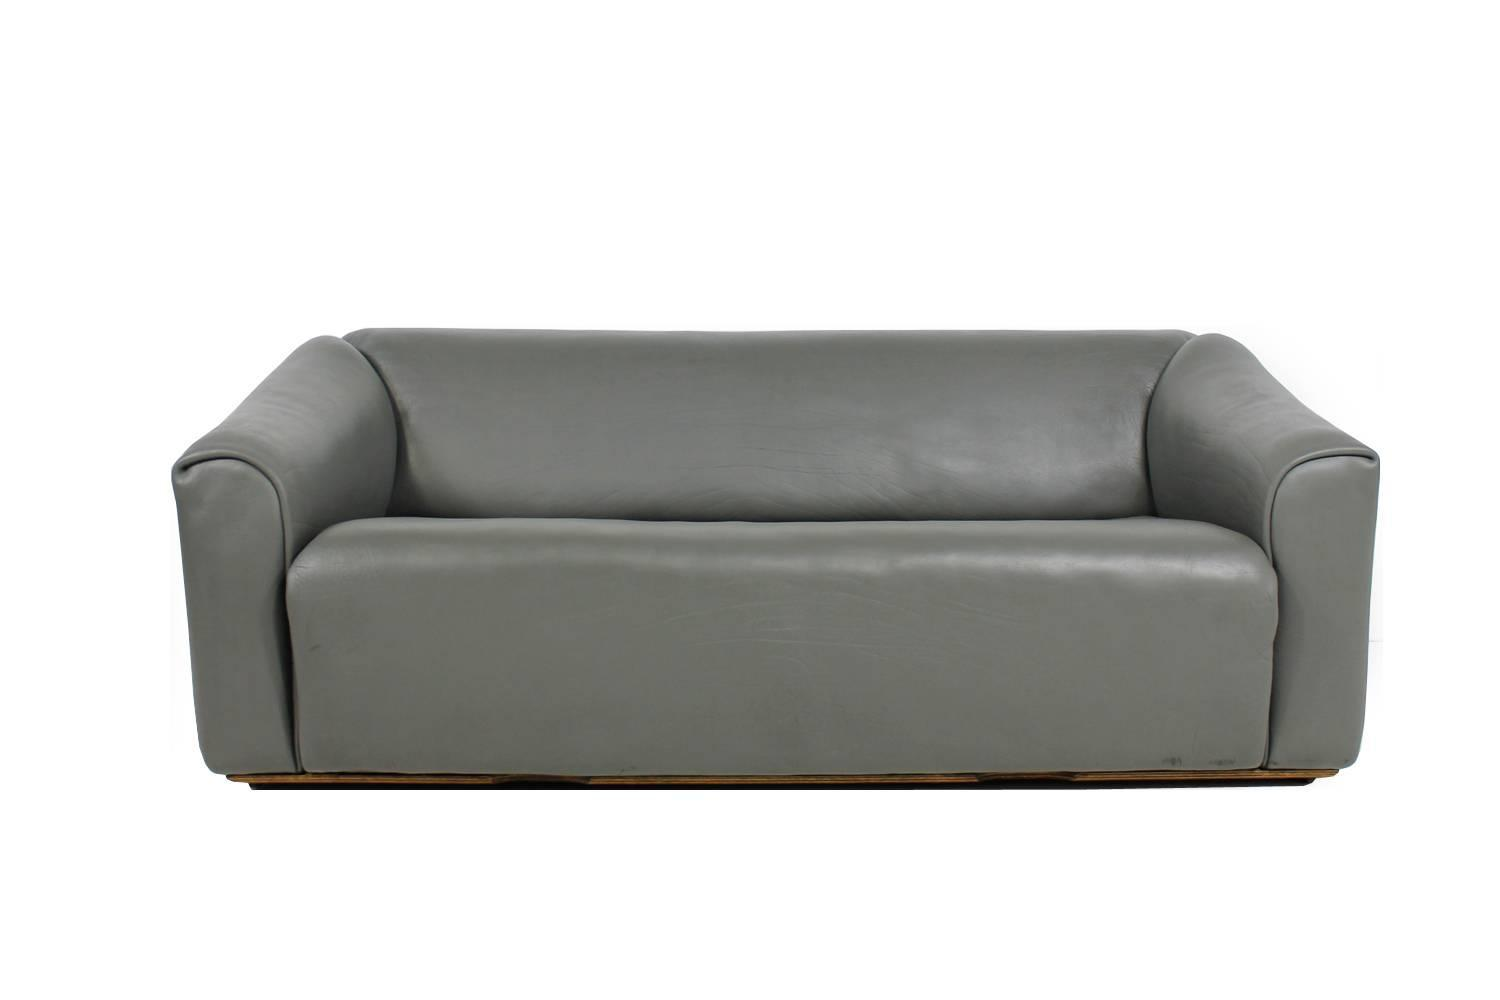 1970s De Sede Ds 47 Vintage Buffalo Leather Lounge Sofa For Sale At 1stdibs